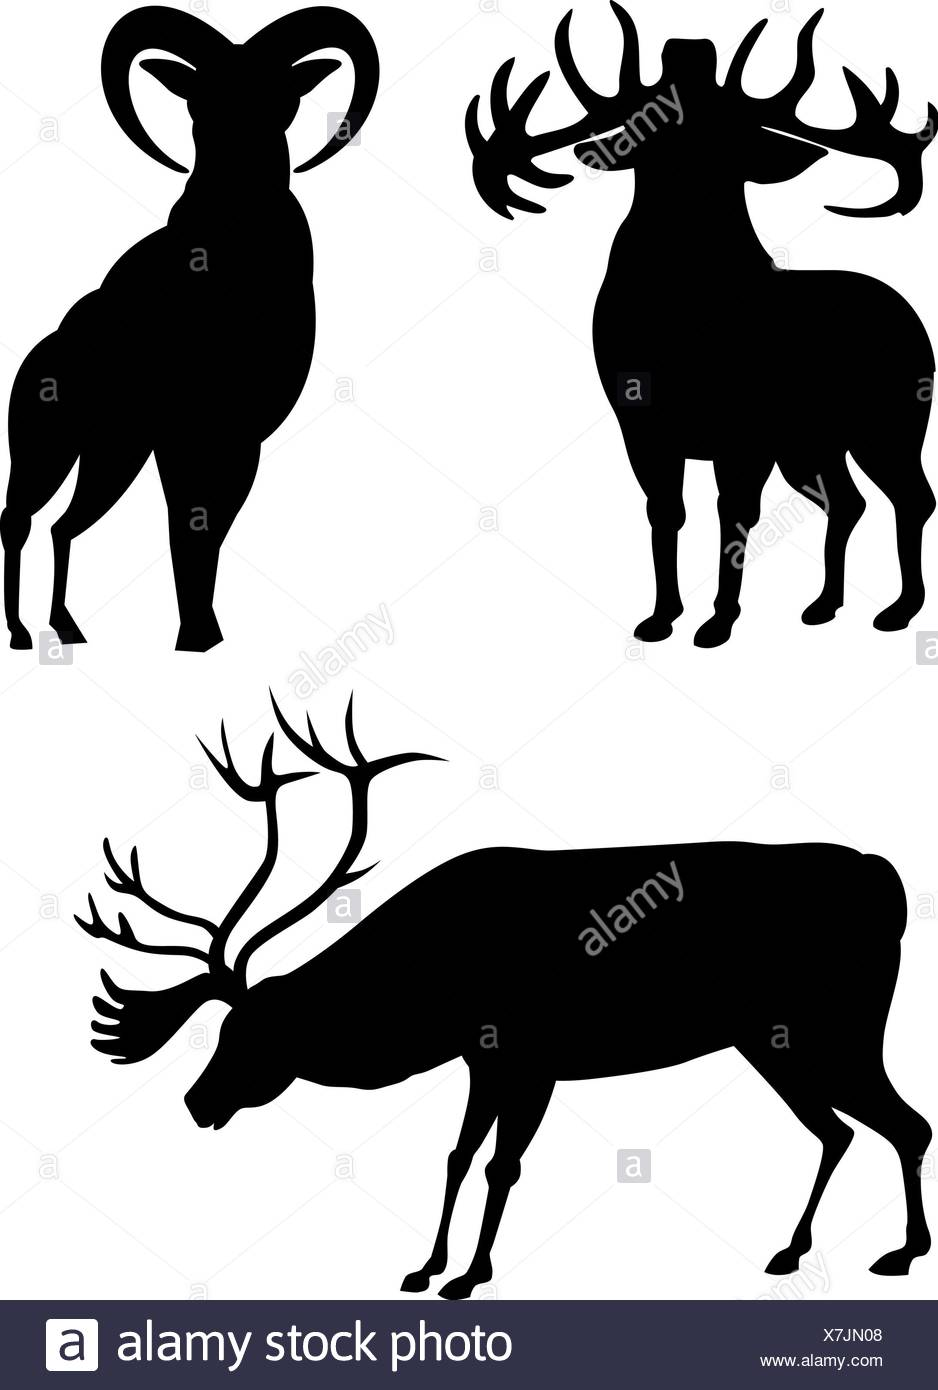 938x1390 Elk Silhouette Stock Photos Amp Elk Silhouette Stock Images